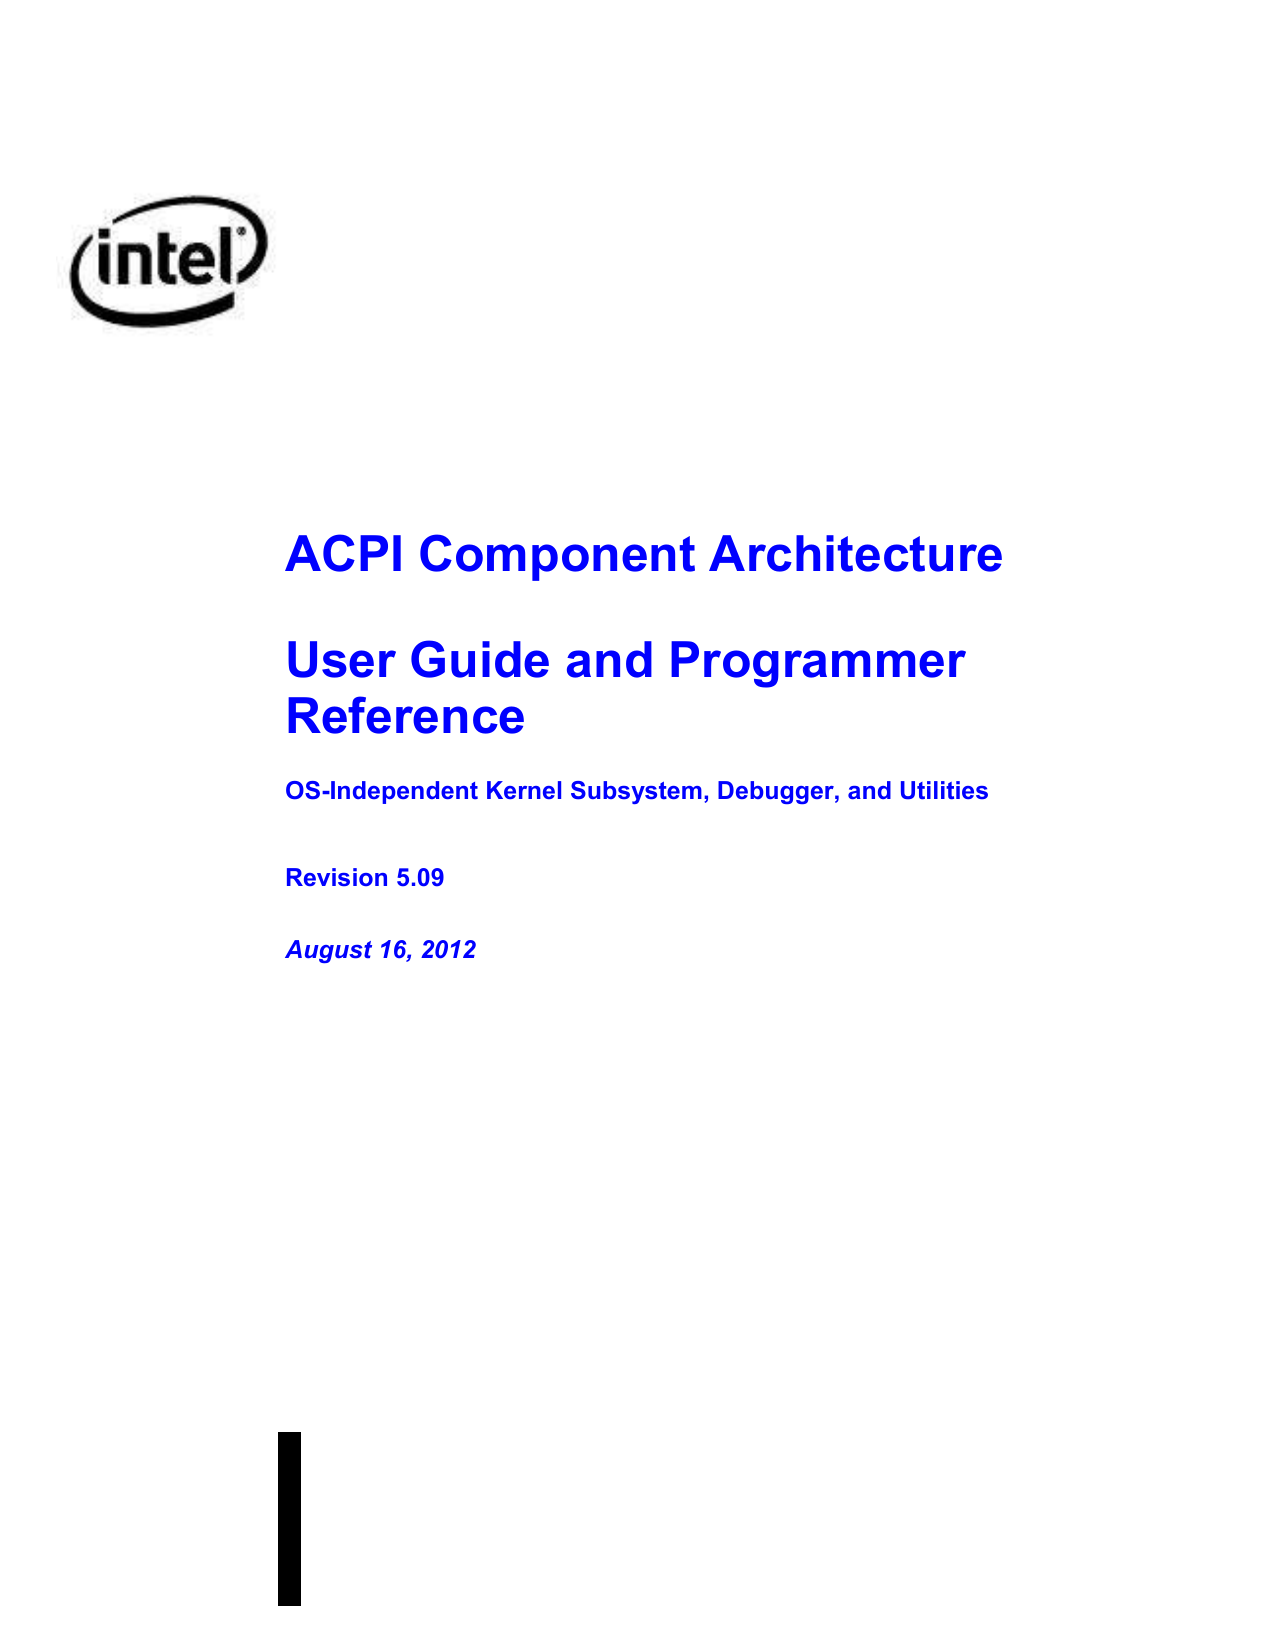 ACPI Component Architecture Programmer Reference